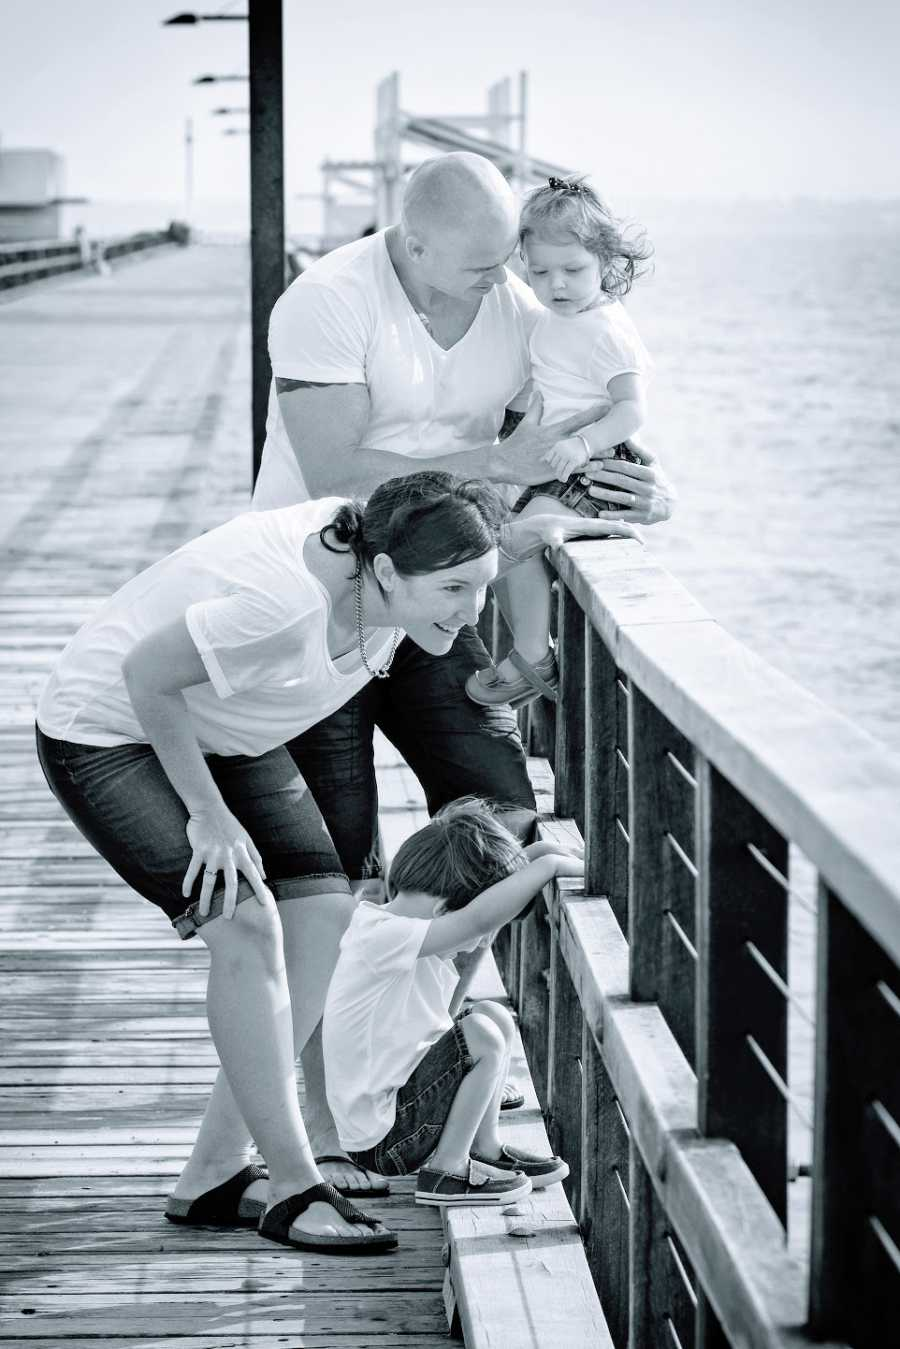 Parents with their two young children on a bridge by the water